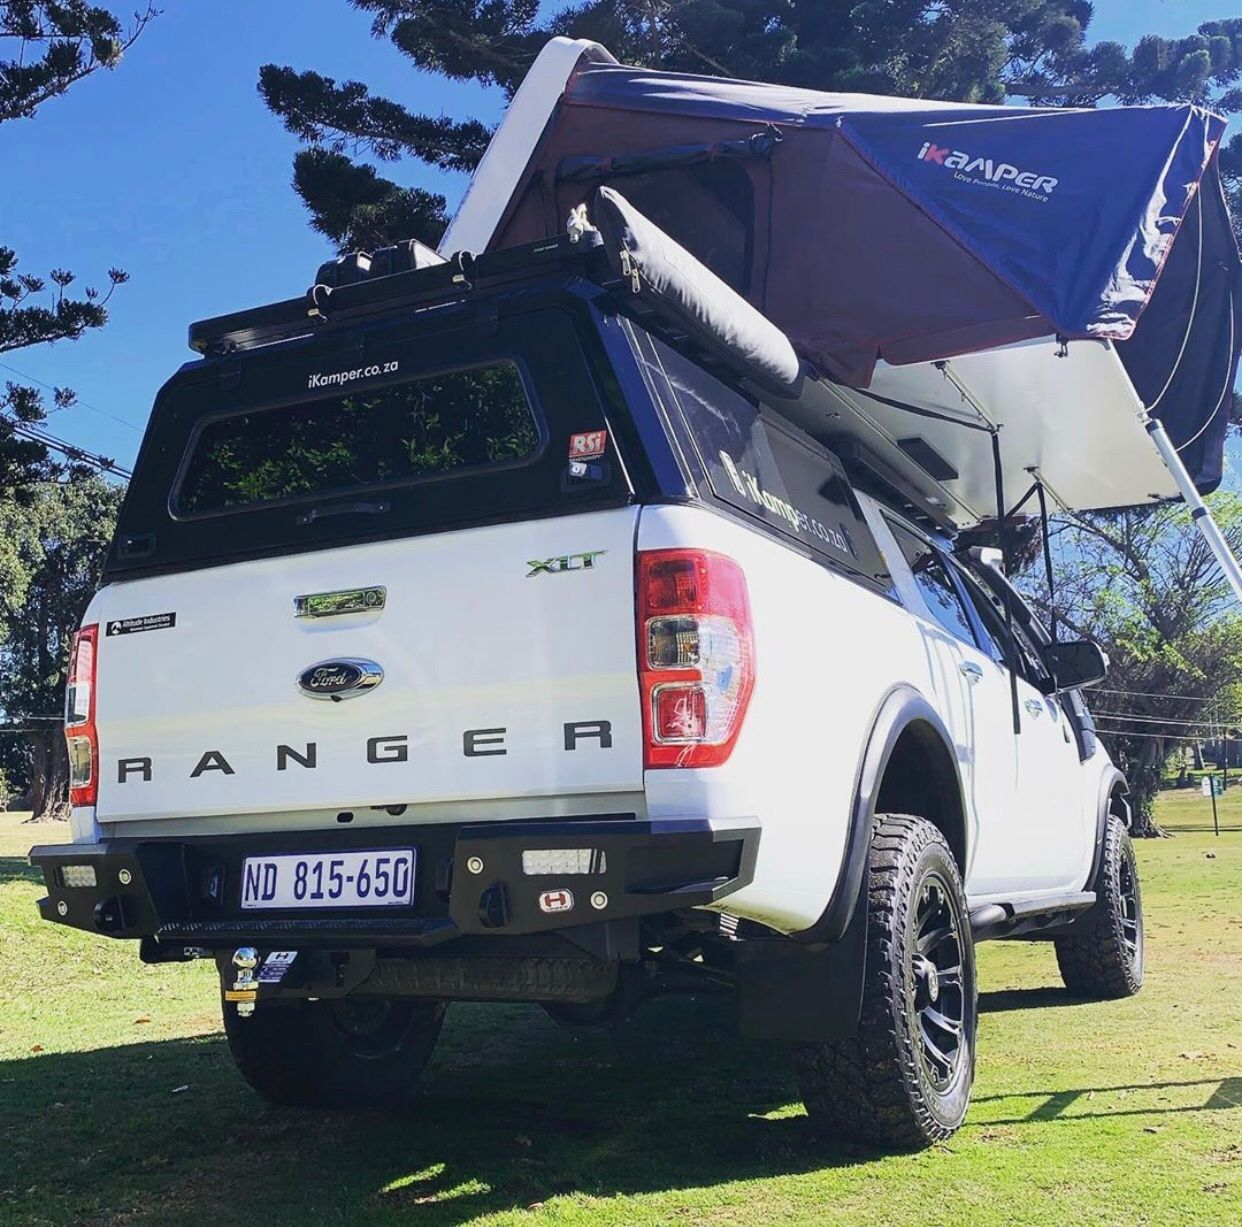 Pin By Jazira Fahri On 4wheel In 2020 Ford Ranger Roof Top Tent Van Life